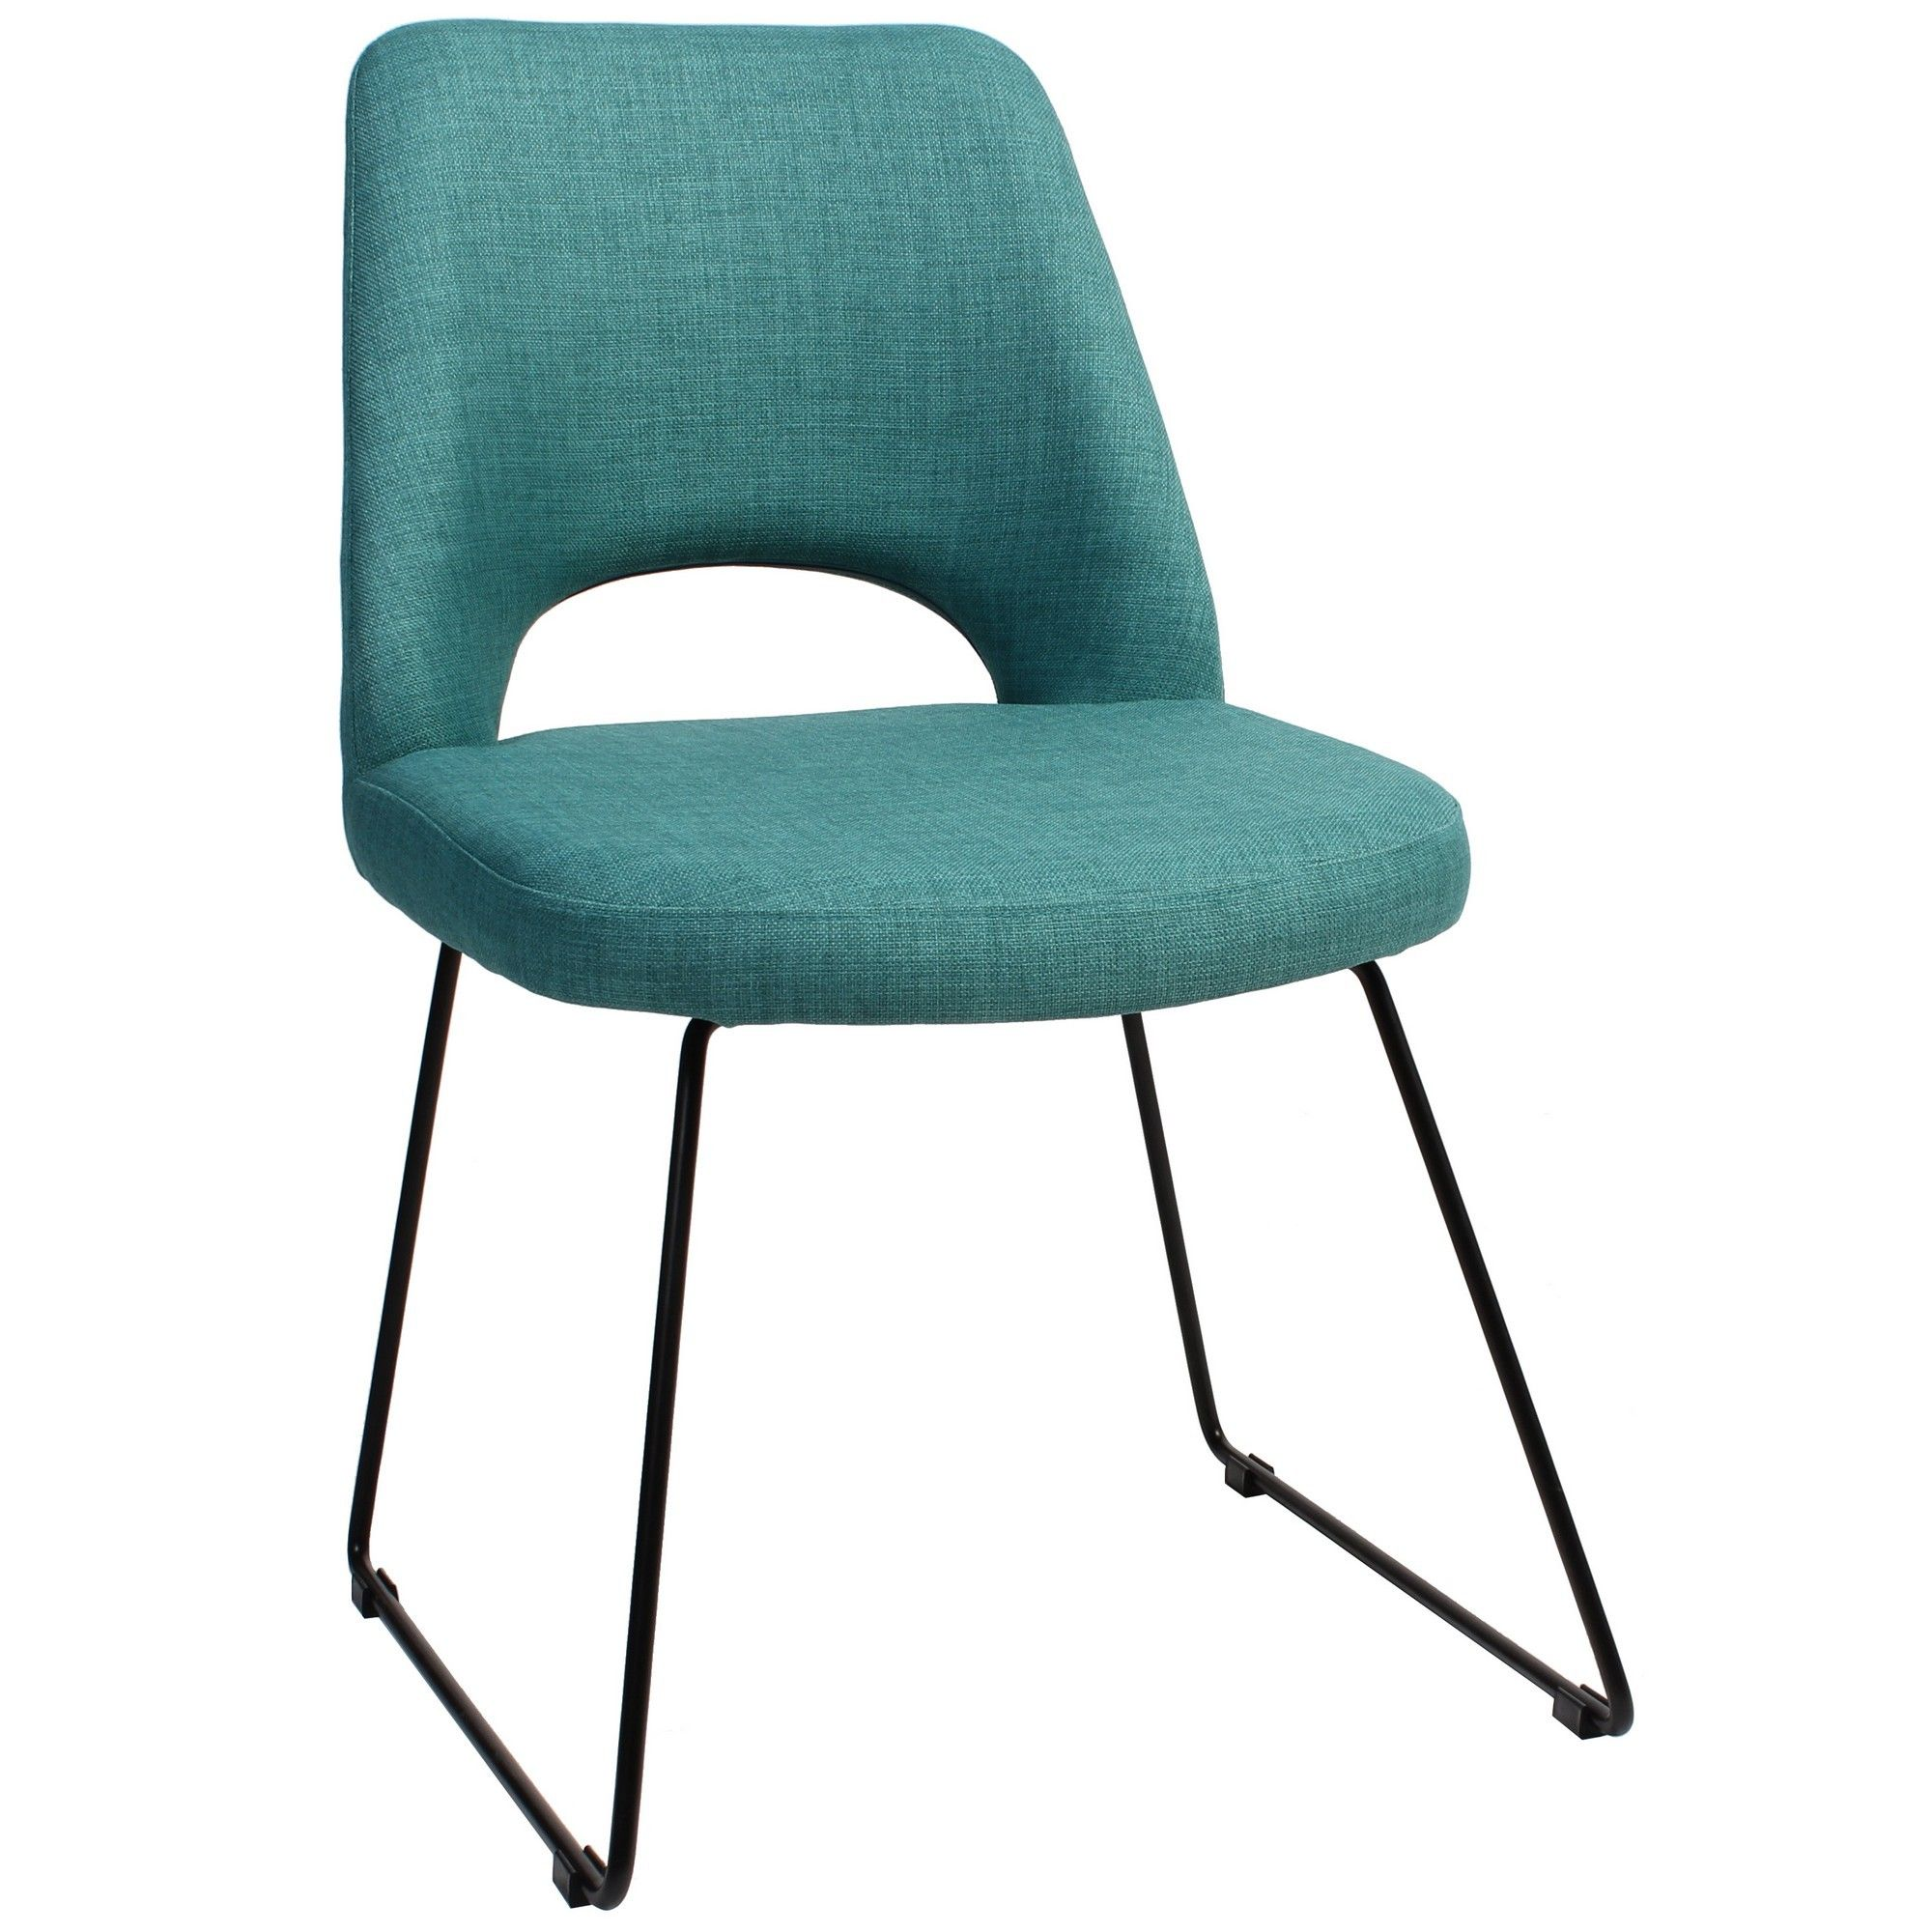 Albury Commercial Grade Fabric Dining Chair, Metal Sled